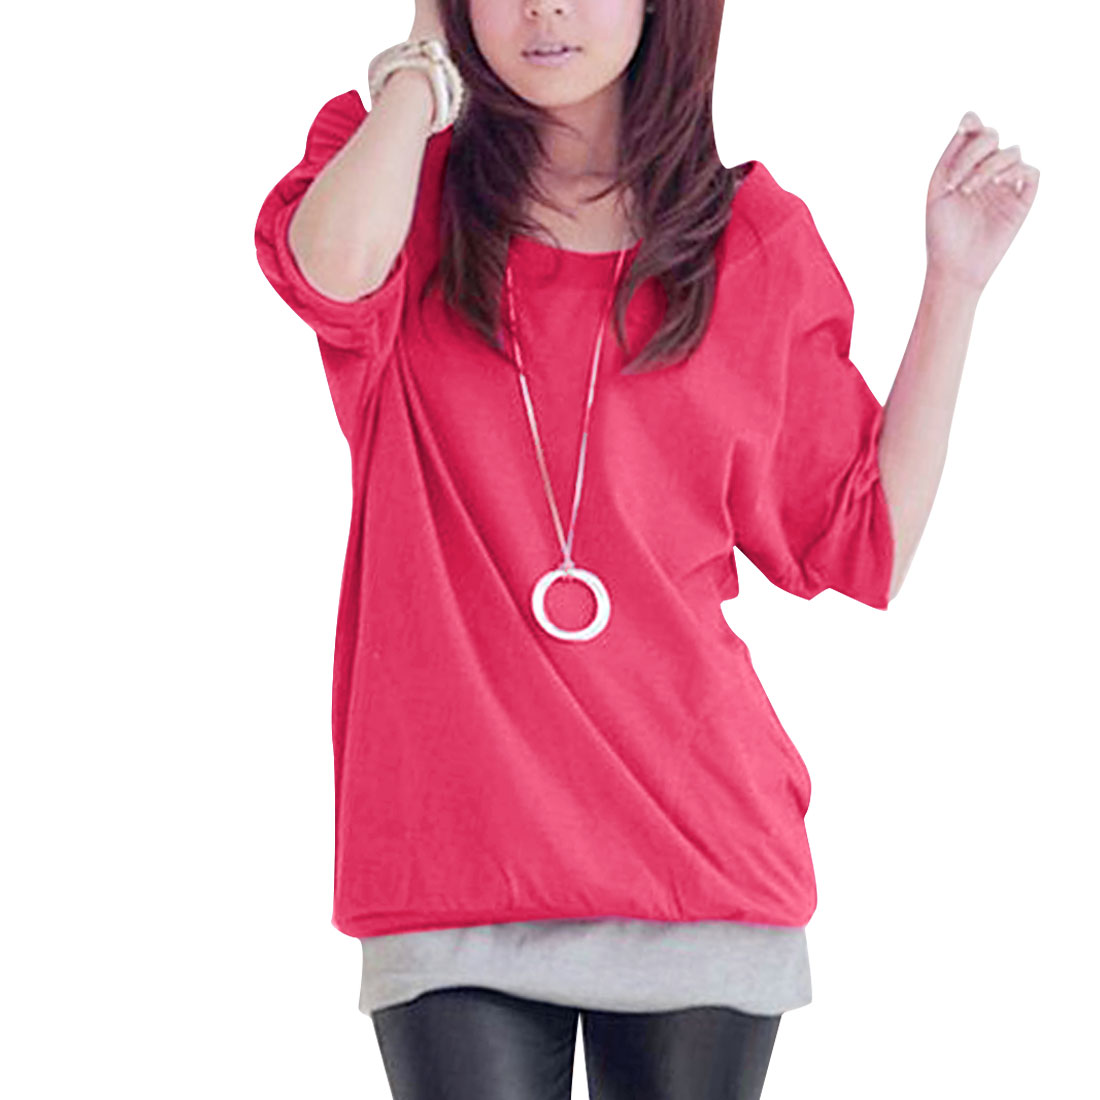 Summer Leisure Low Round Neck Solid Fuchsia XS T-shirt for Ladies